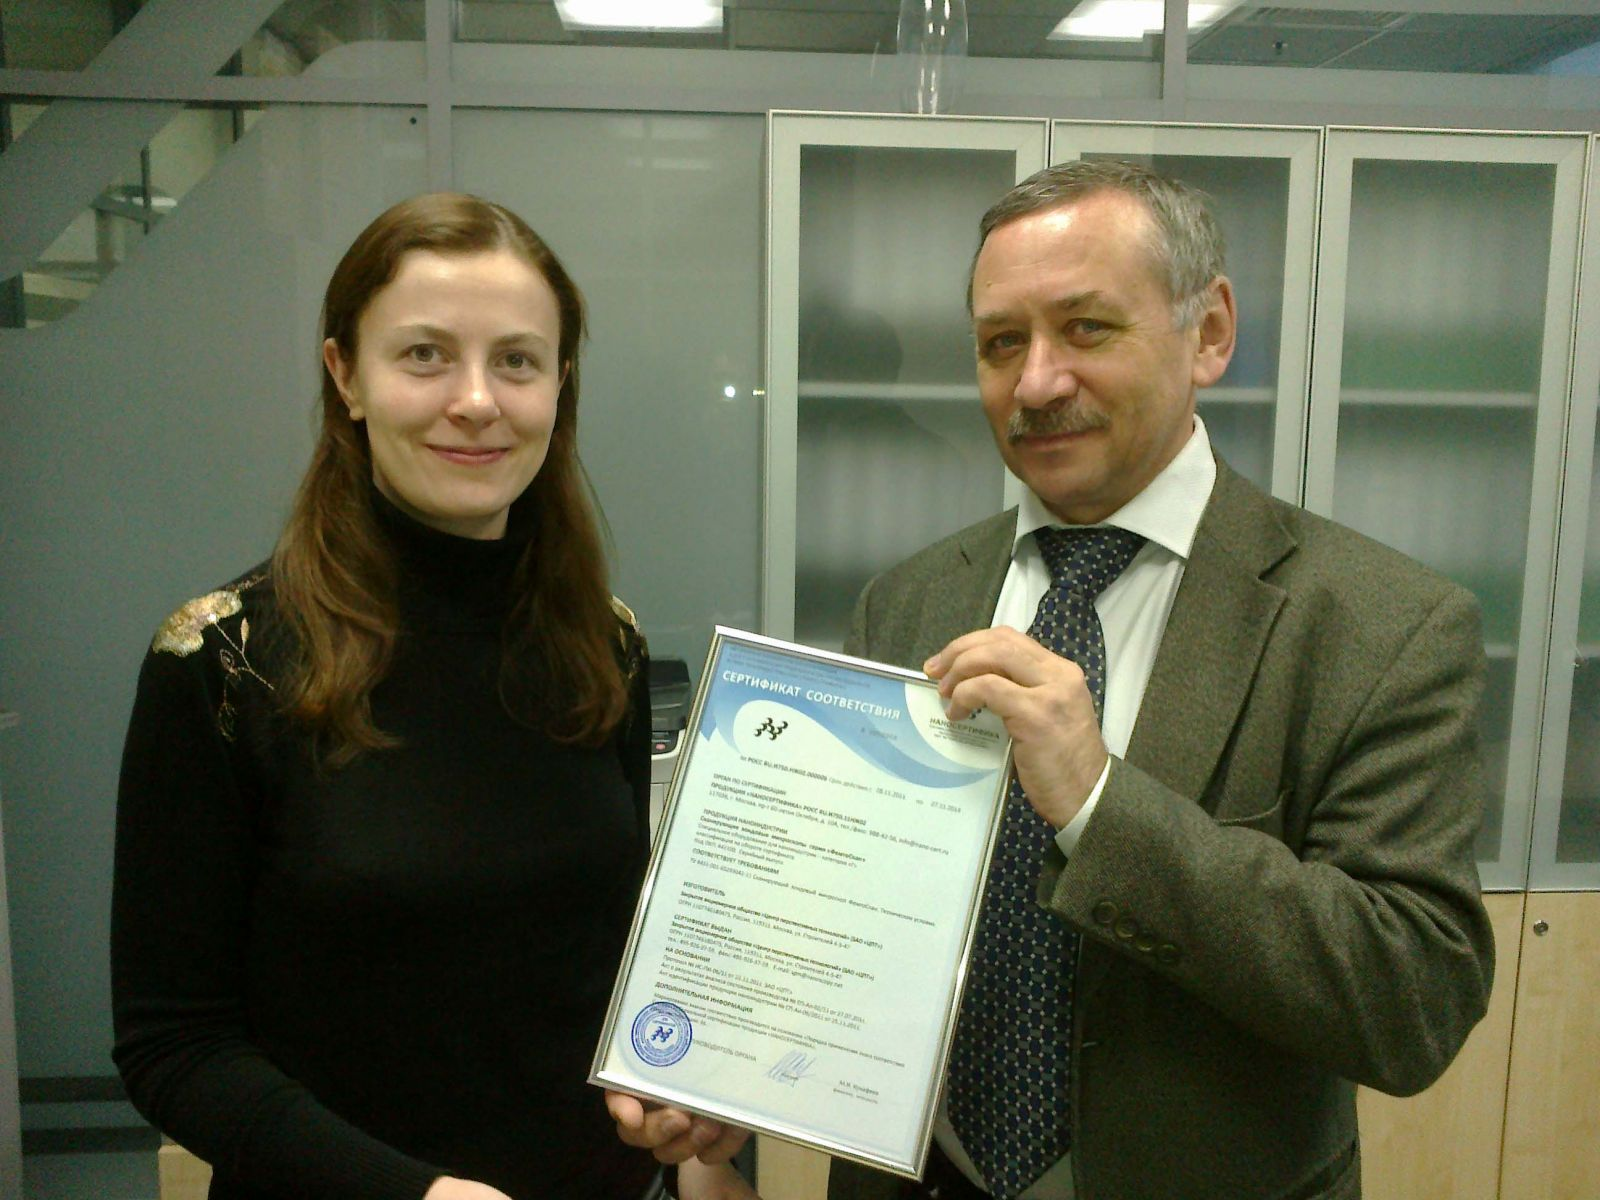 Yuri Toropov, CEO of Nanocertifica, awards Certificate of conformity for SPM FemtoScan to Olga Sinitsyna, responsible for the certification scientific researcher of Advanced Technologies Center